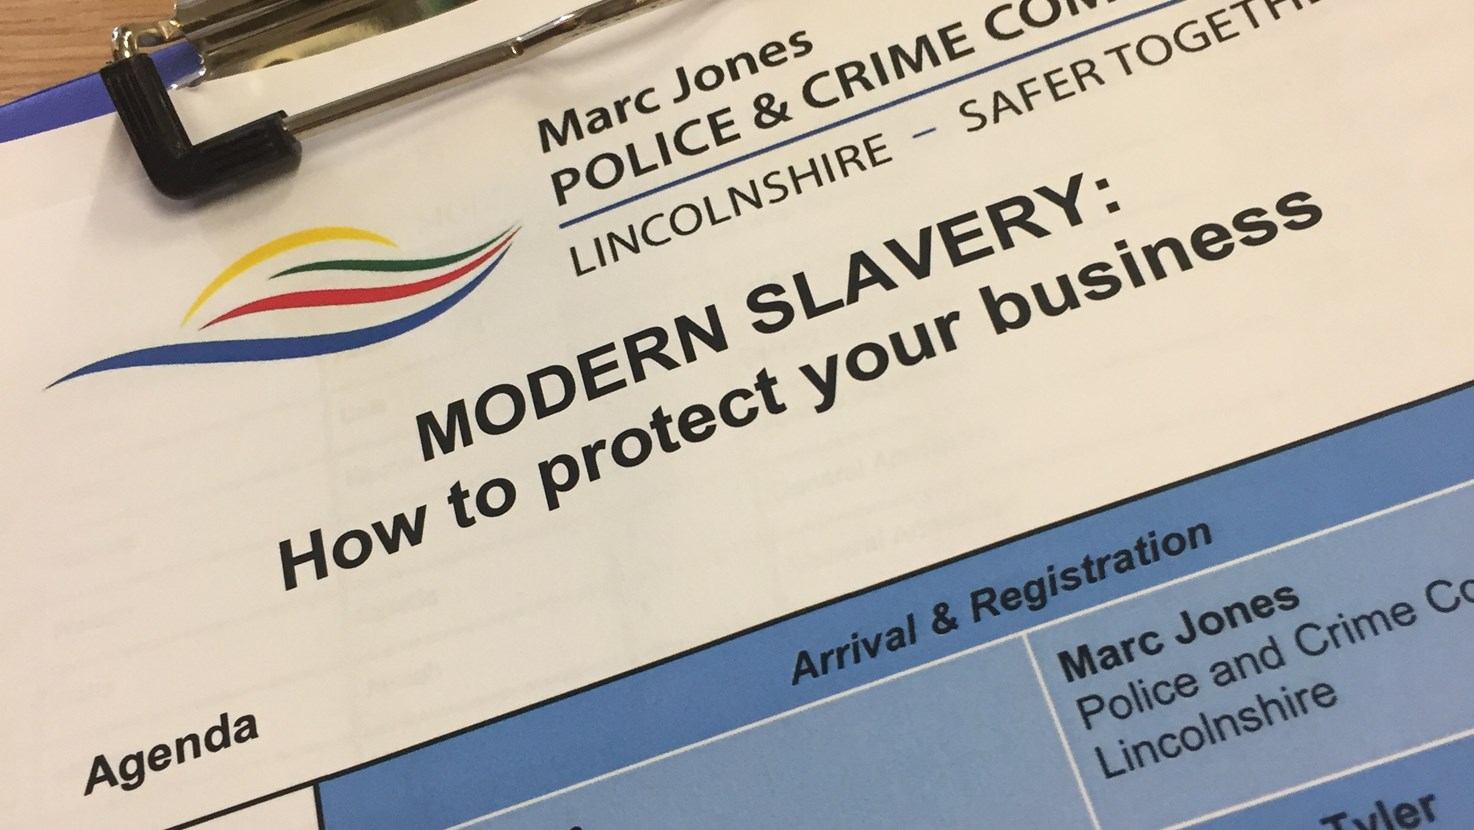 PCC holds Modern Slavery Event for Businesses